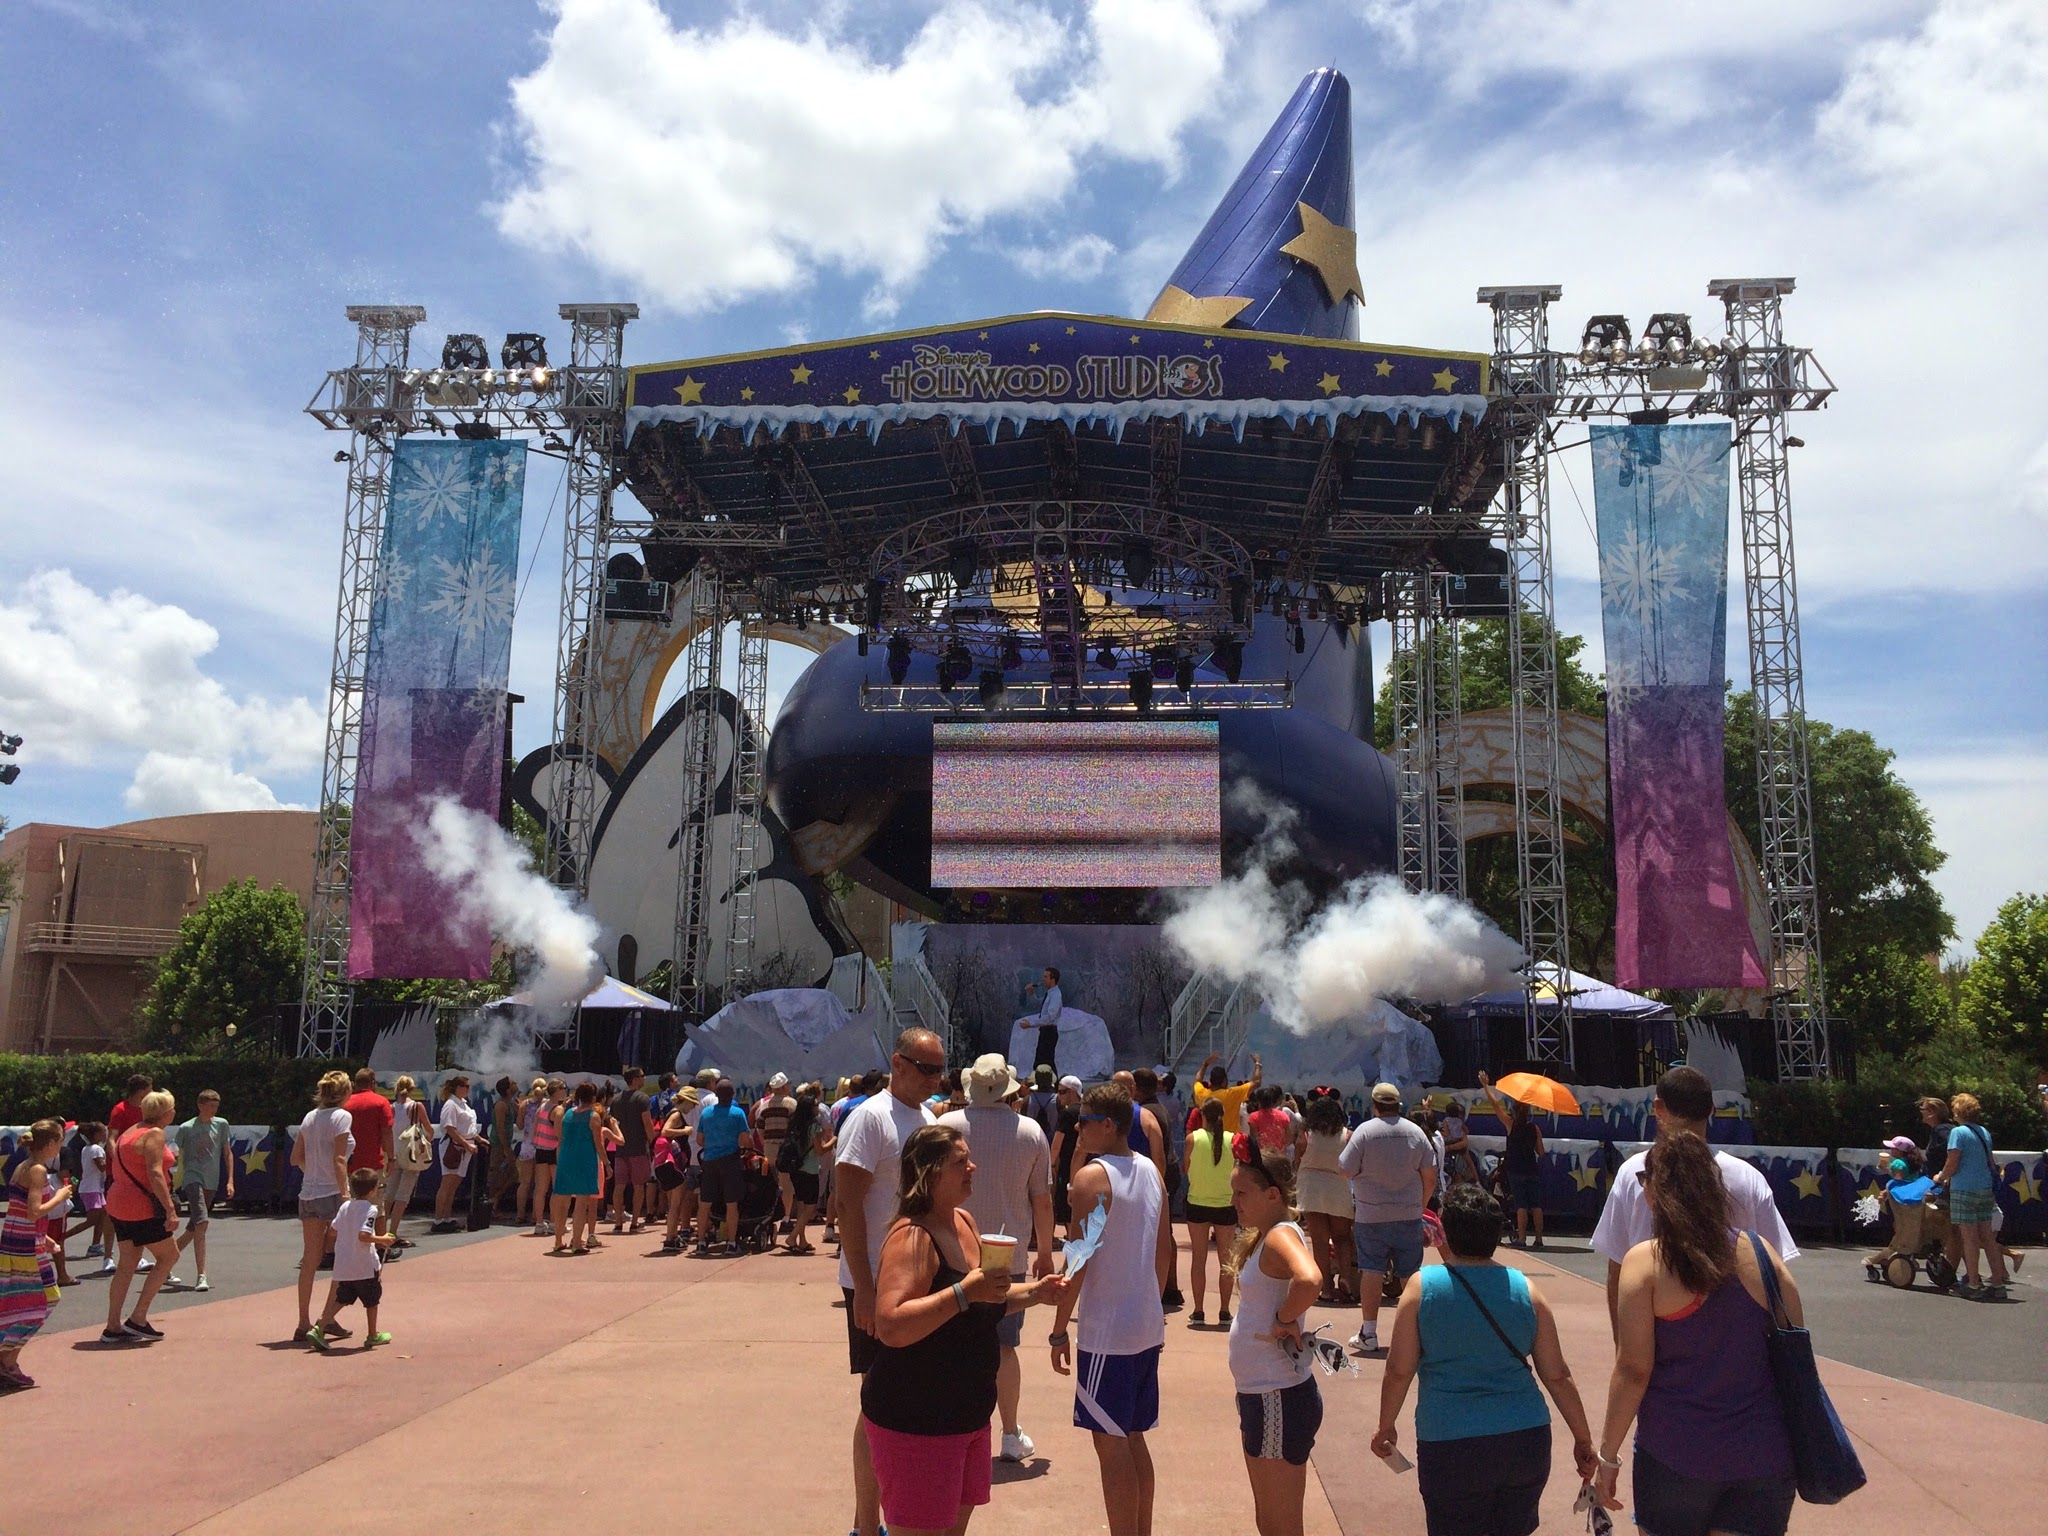 Observations from Disney's Hollywood Studios: July 28, 2014